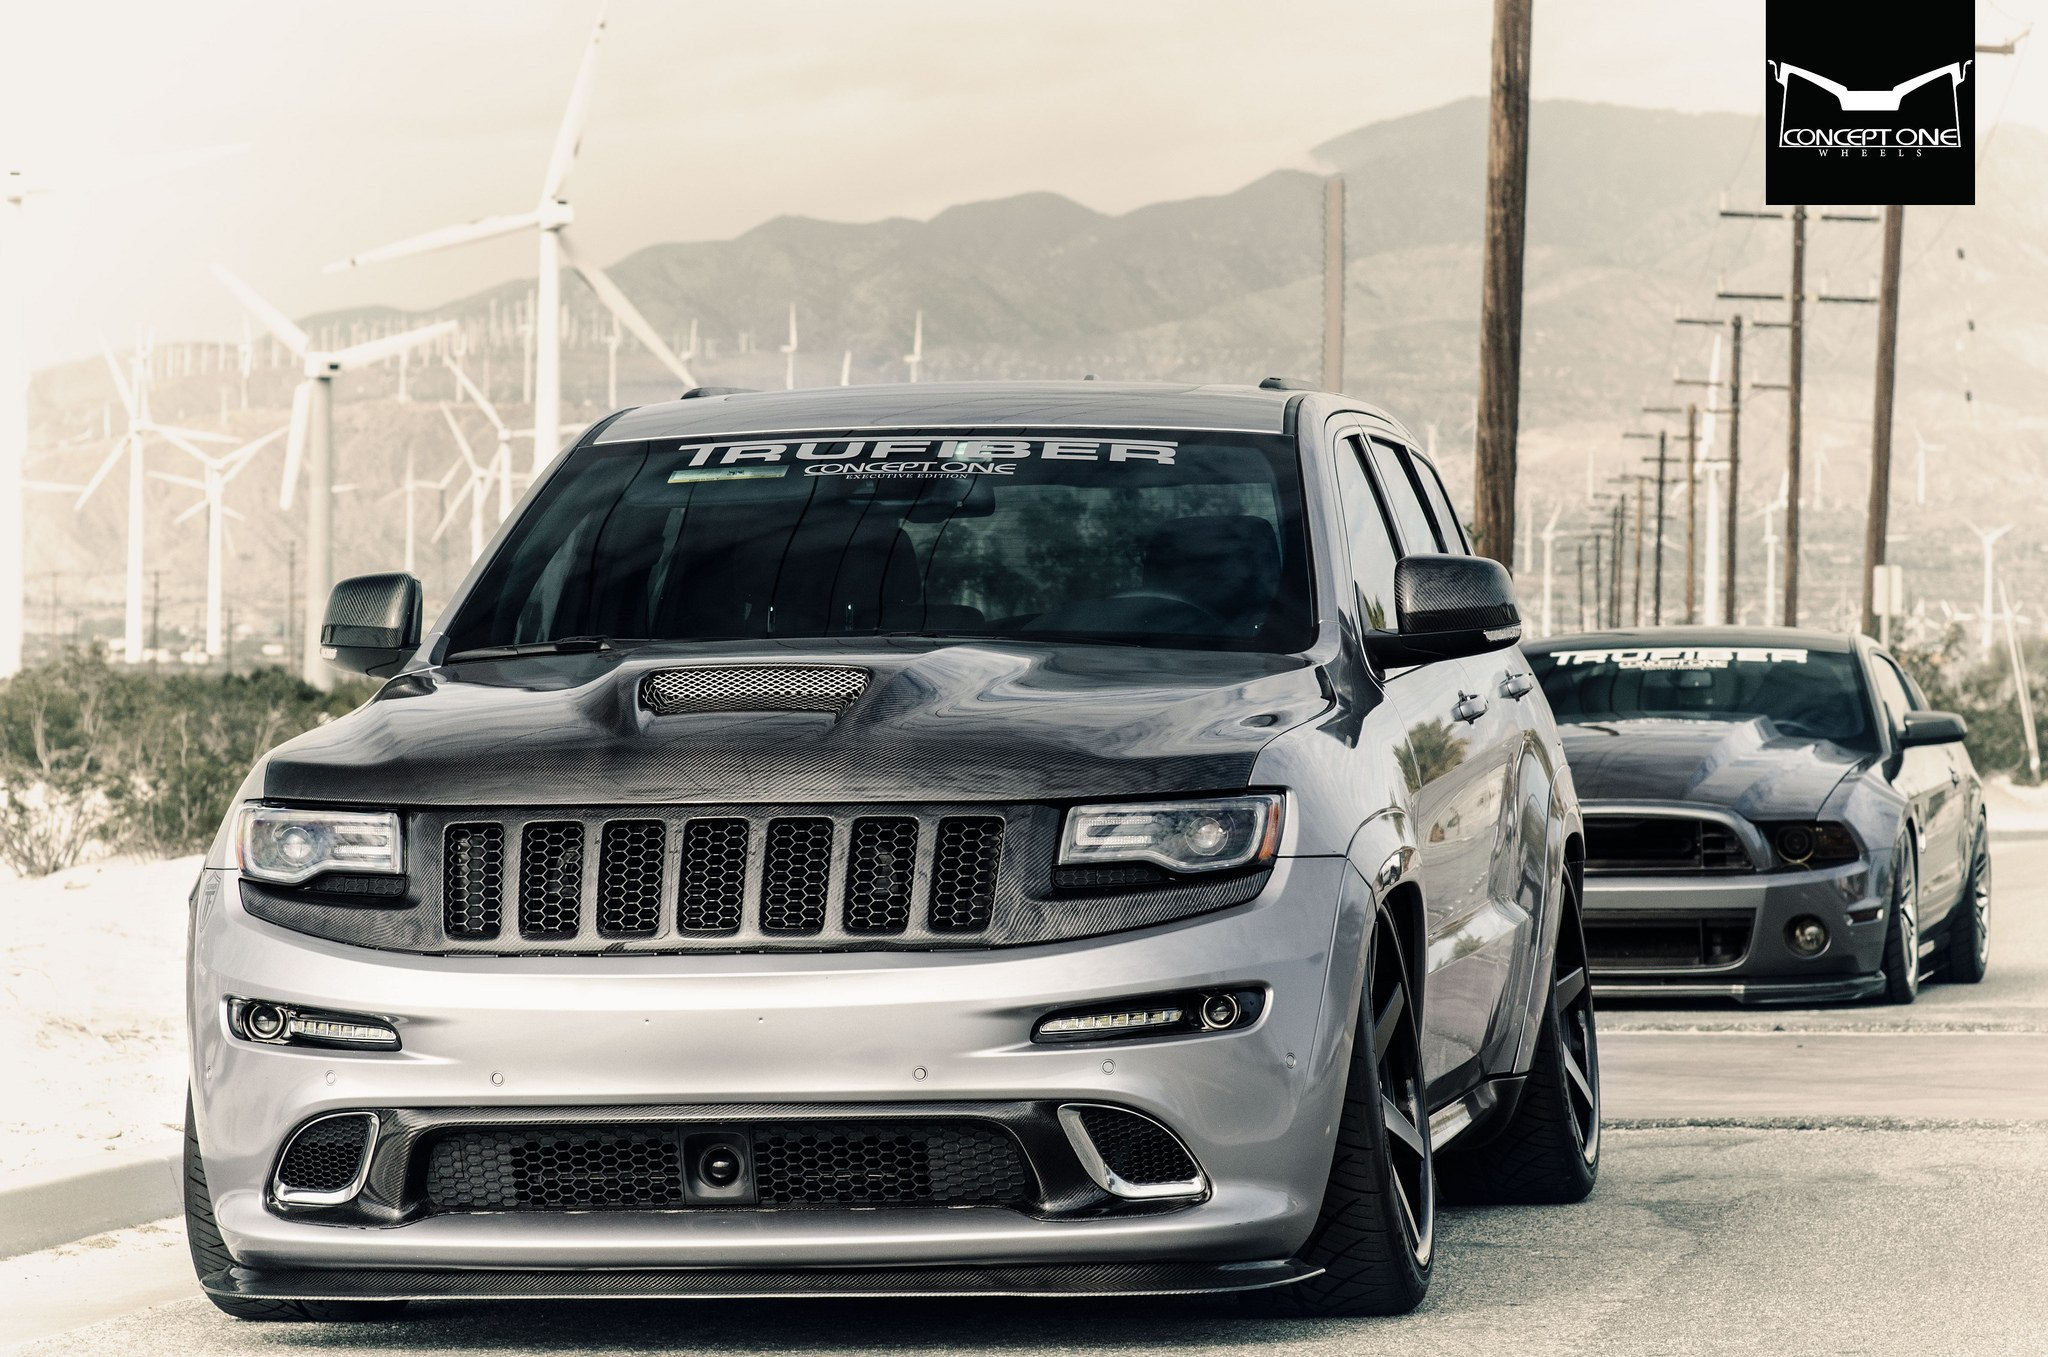 air lifted street weapon grand cherokee srt by concept one gallery. Black Bedroom Furniture Sets. Home Design Ideas